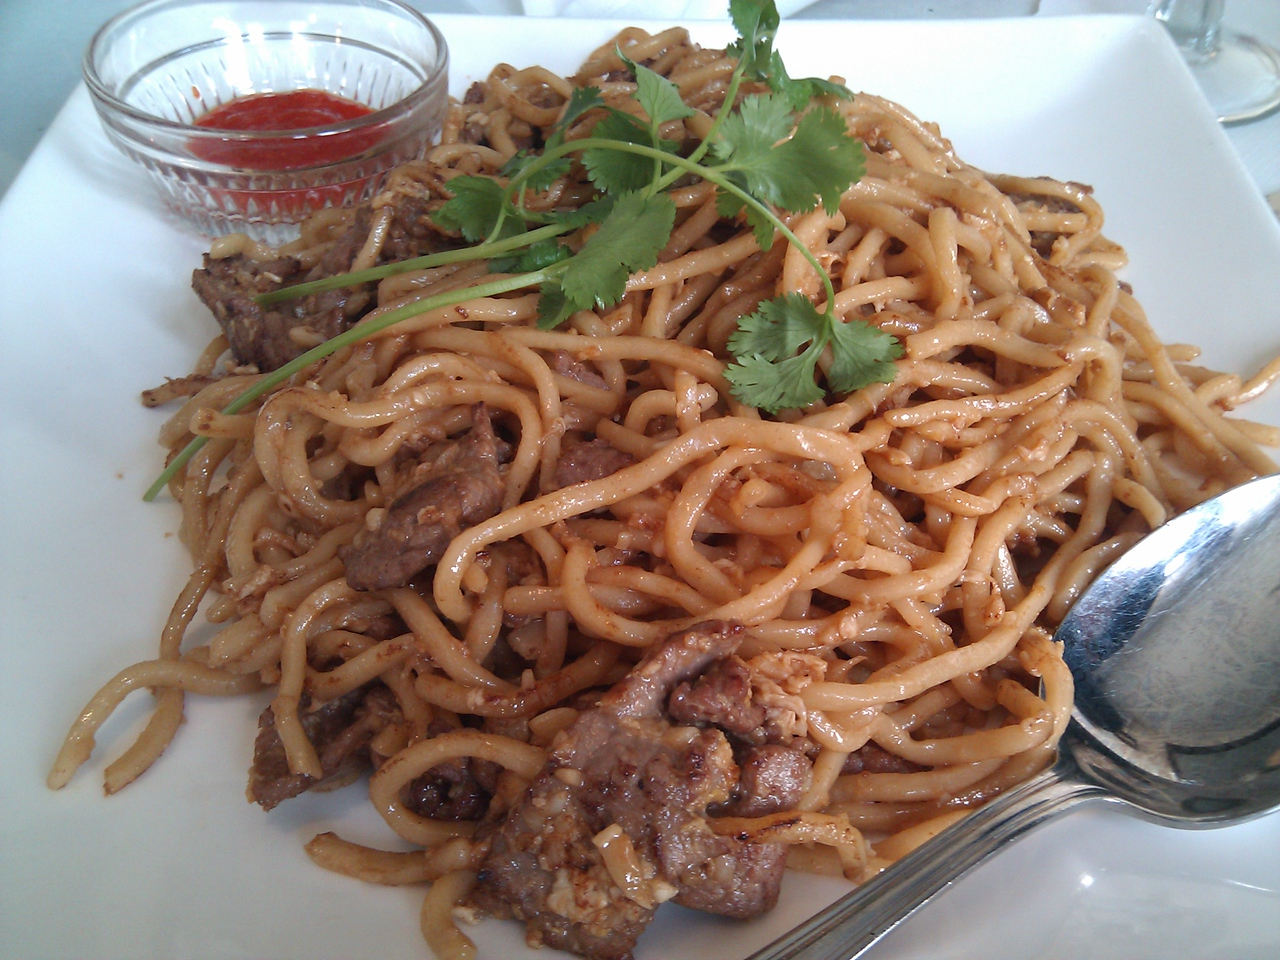 Dragonfly - Garlic Noodles with Beef